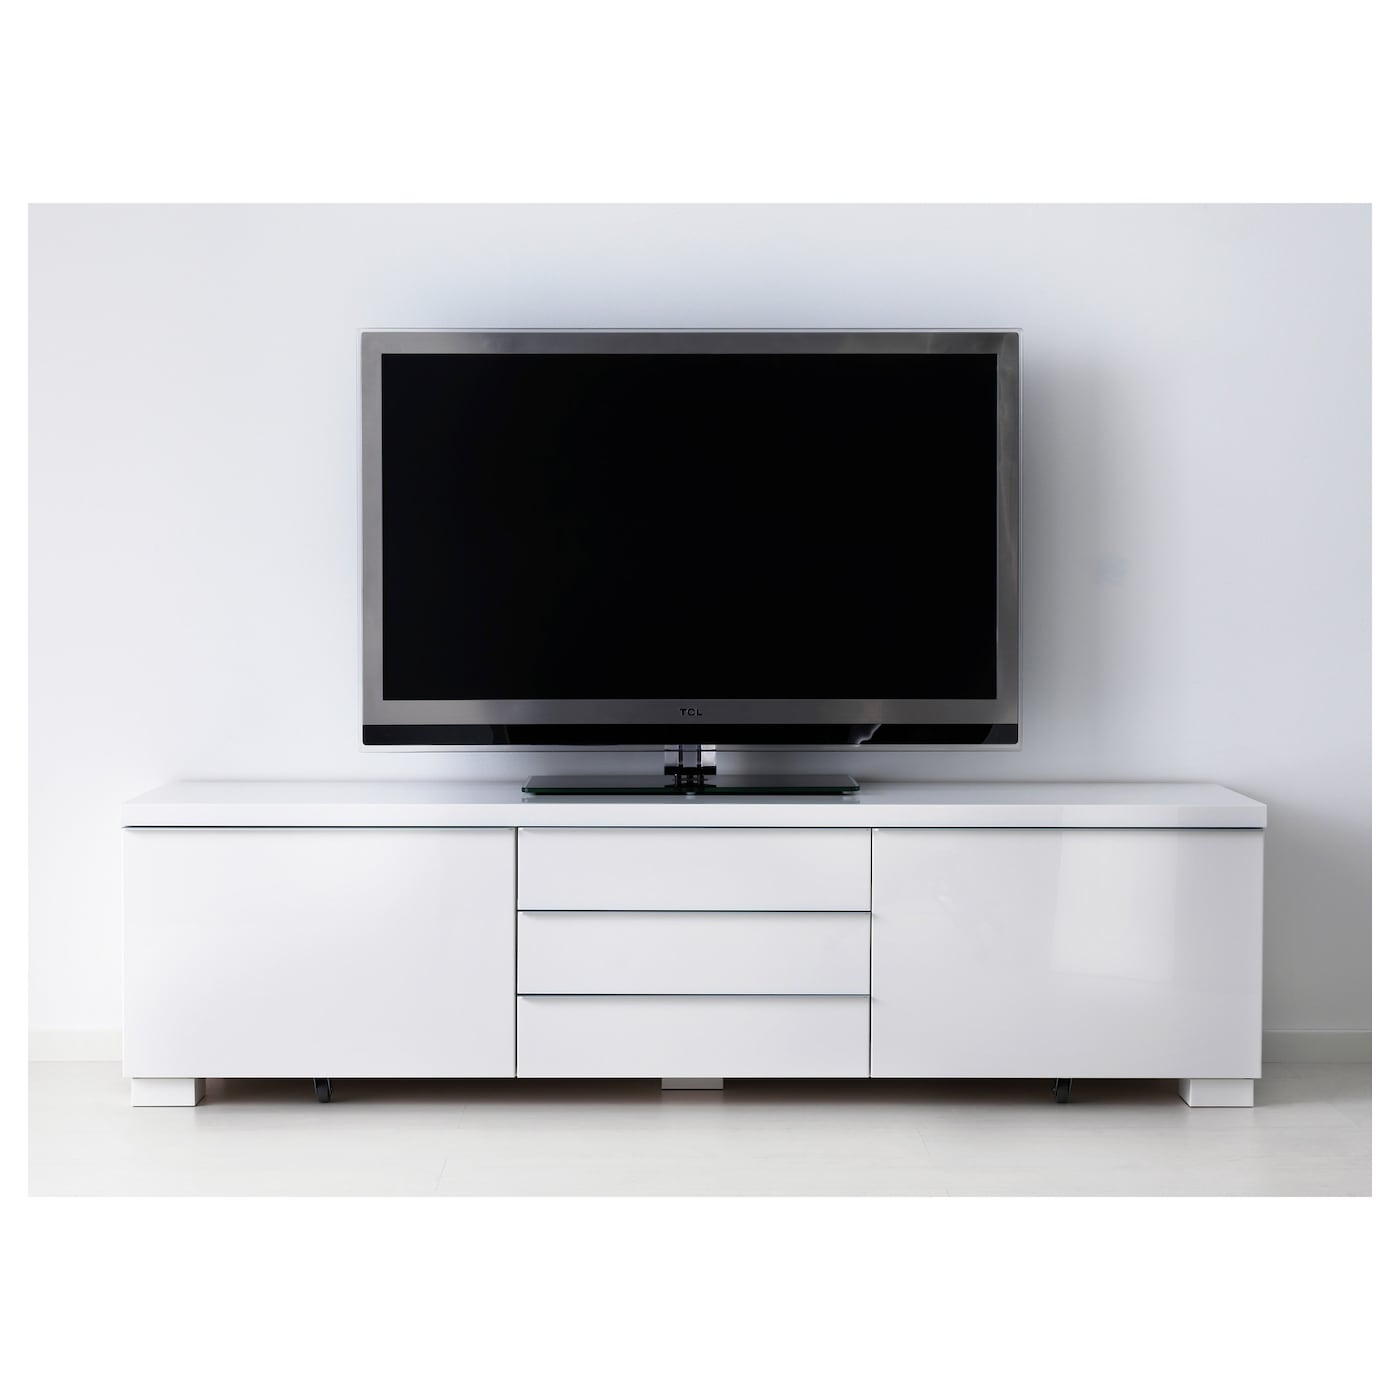 Meubles Tv Ikea - Best Burs Tv Bench High Gloss White 180×41 Cm Ikea[mjhdah]http://www.ikea.com/gb/en/images/products/vittsj%C3%B6-tv-bench-black-brown-glass__0395334_pe561976_s5.jpg